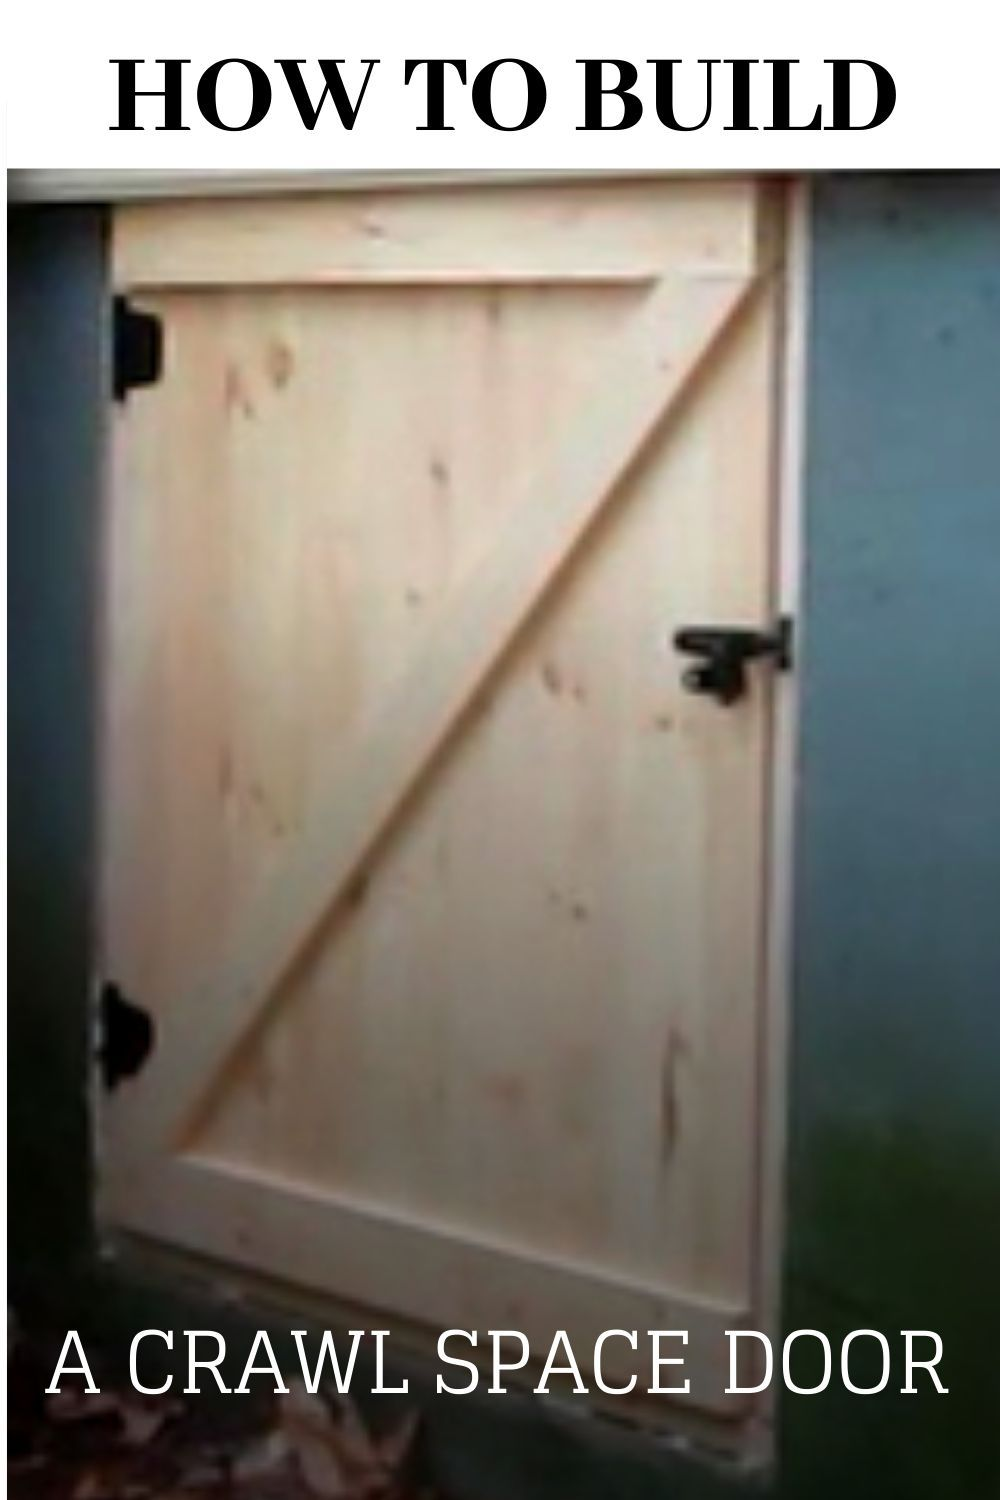 Crawl Space Door In 2020 Crawl Space Door Crawlspace Crawl Space Cover